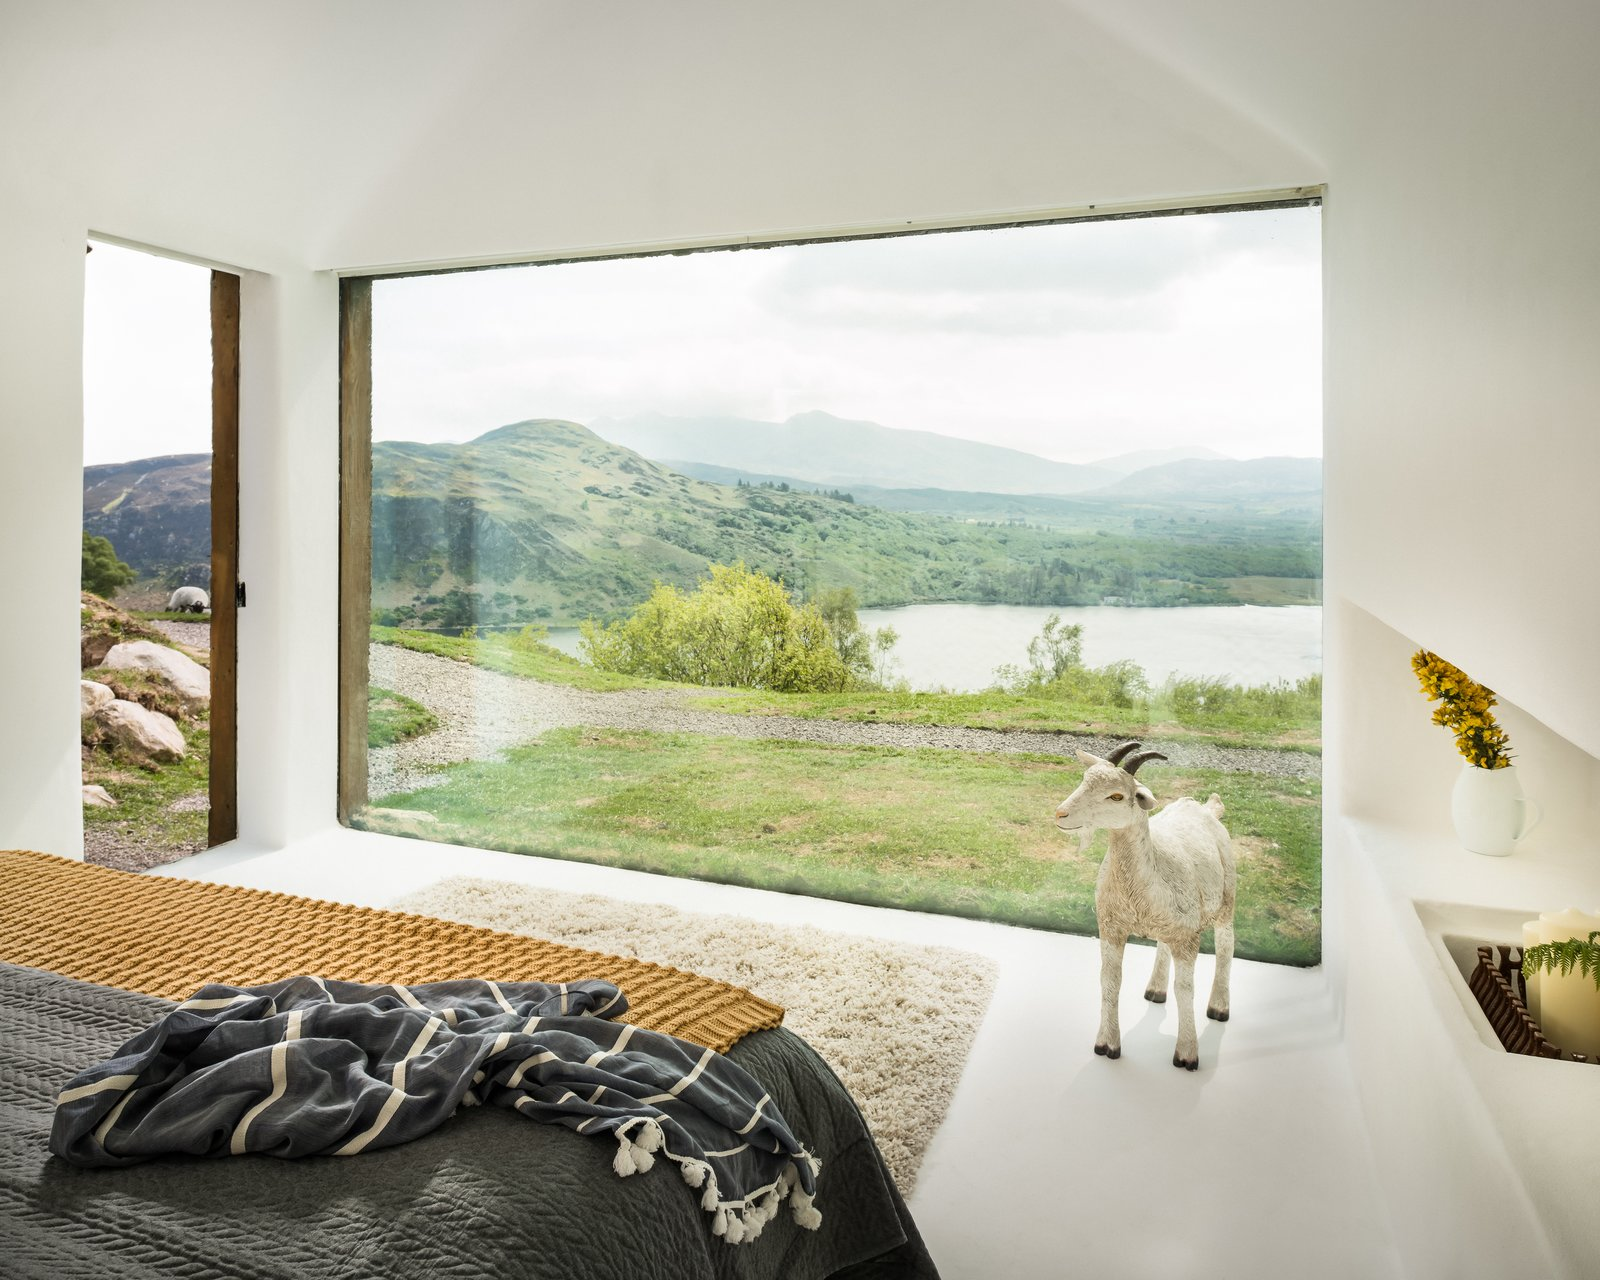 Windows and Picture Window Type The Lost Cottage vacation rental is nestled in the remote lakeside town of Treangarriv in County Kerry, Ireland. The principal bedroom features a massive picture window that looks out over Caragh Lake and the surrounding farmland. A glass roof was also installed above the sunken tub in the bathroom so that guests can gaze up at the stars in the International Dark Sky Reserve.  Dwell's Favorite Photos from 7 Vacation Rentals in Ireland That Put a Spin on the Classic Cottage